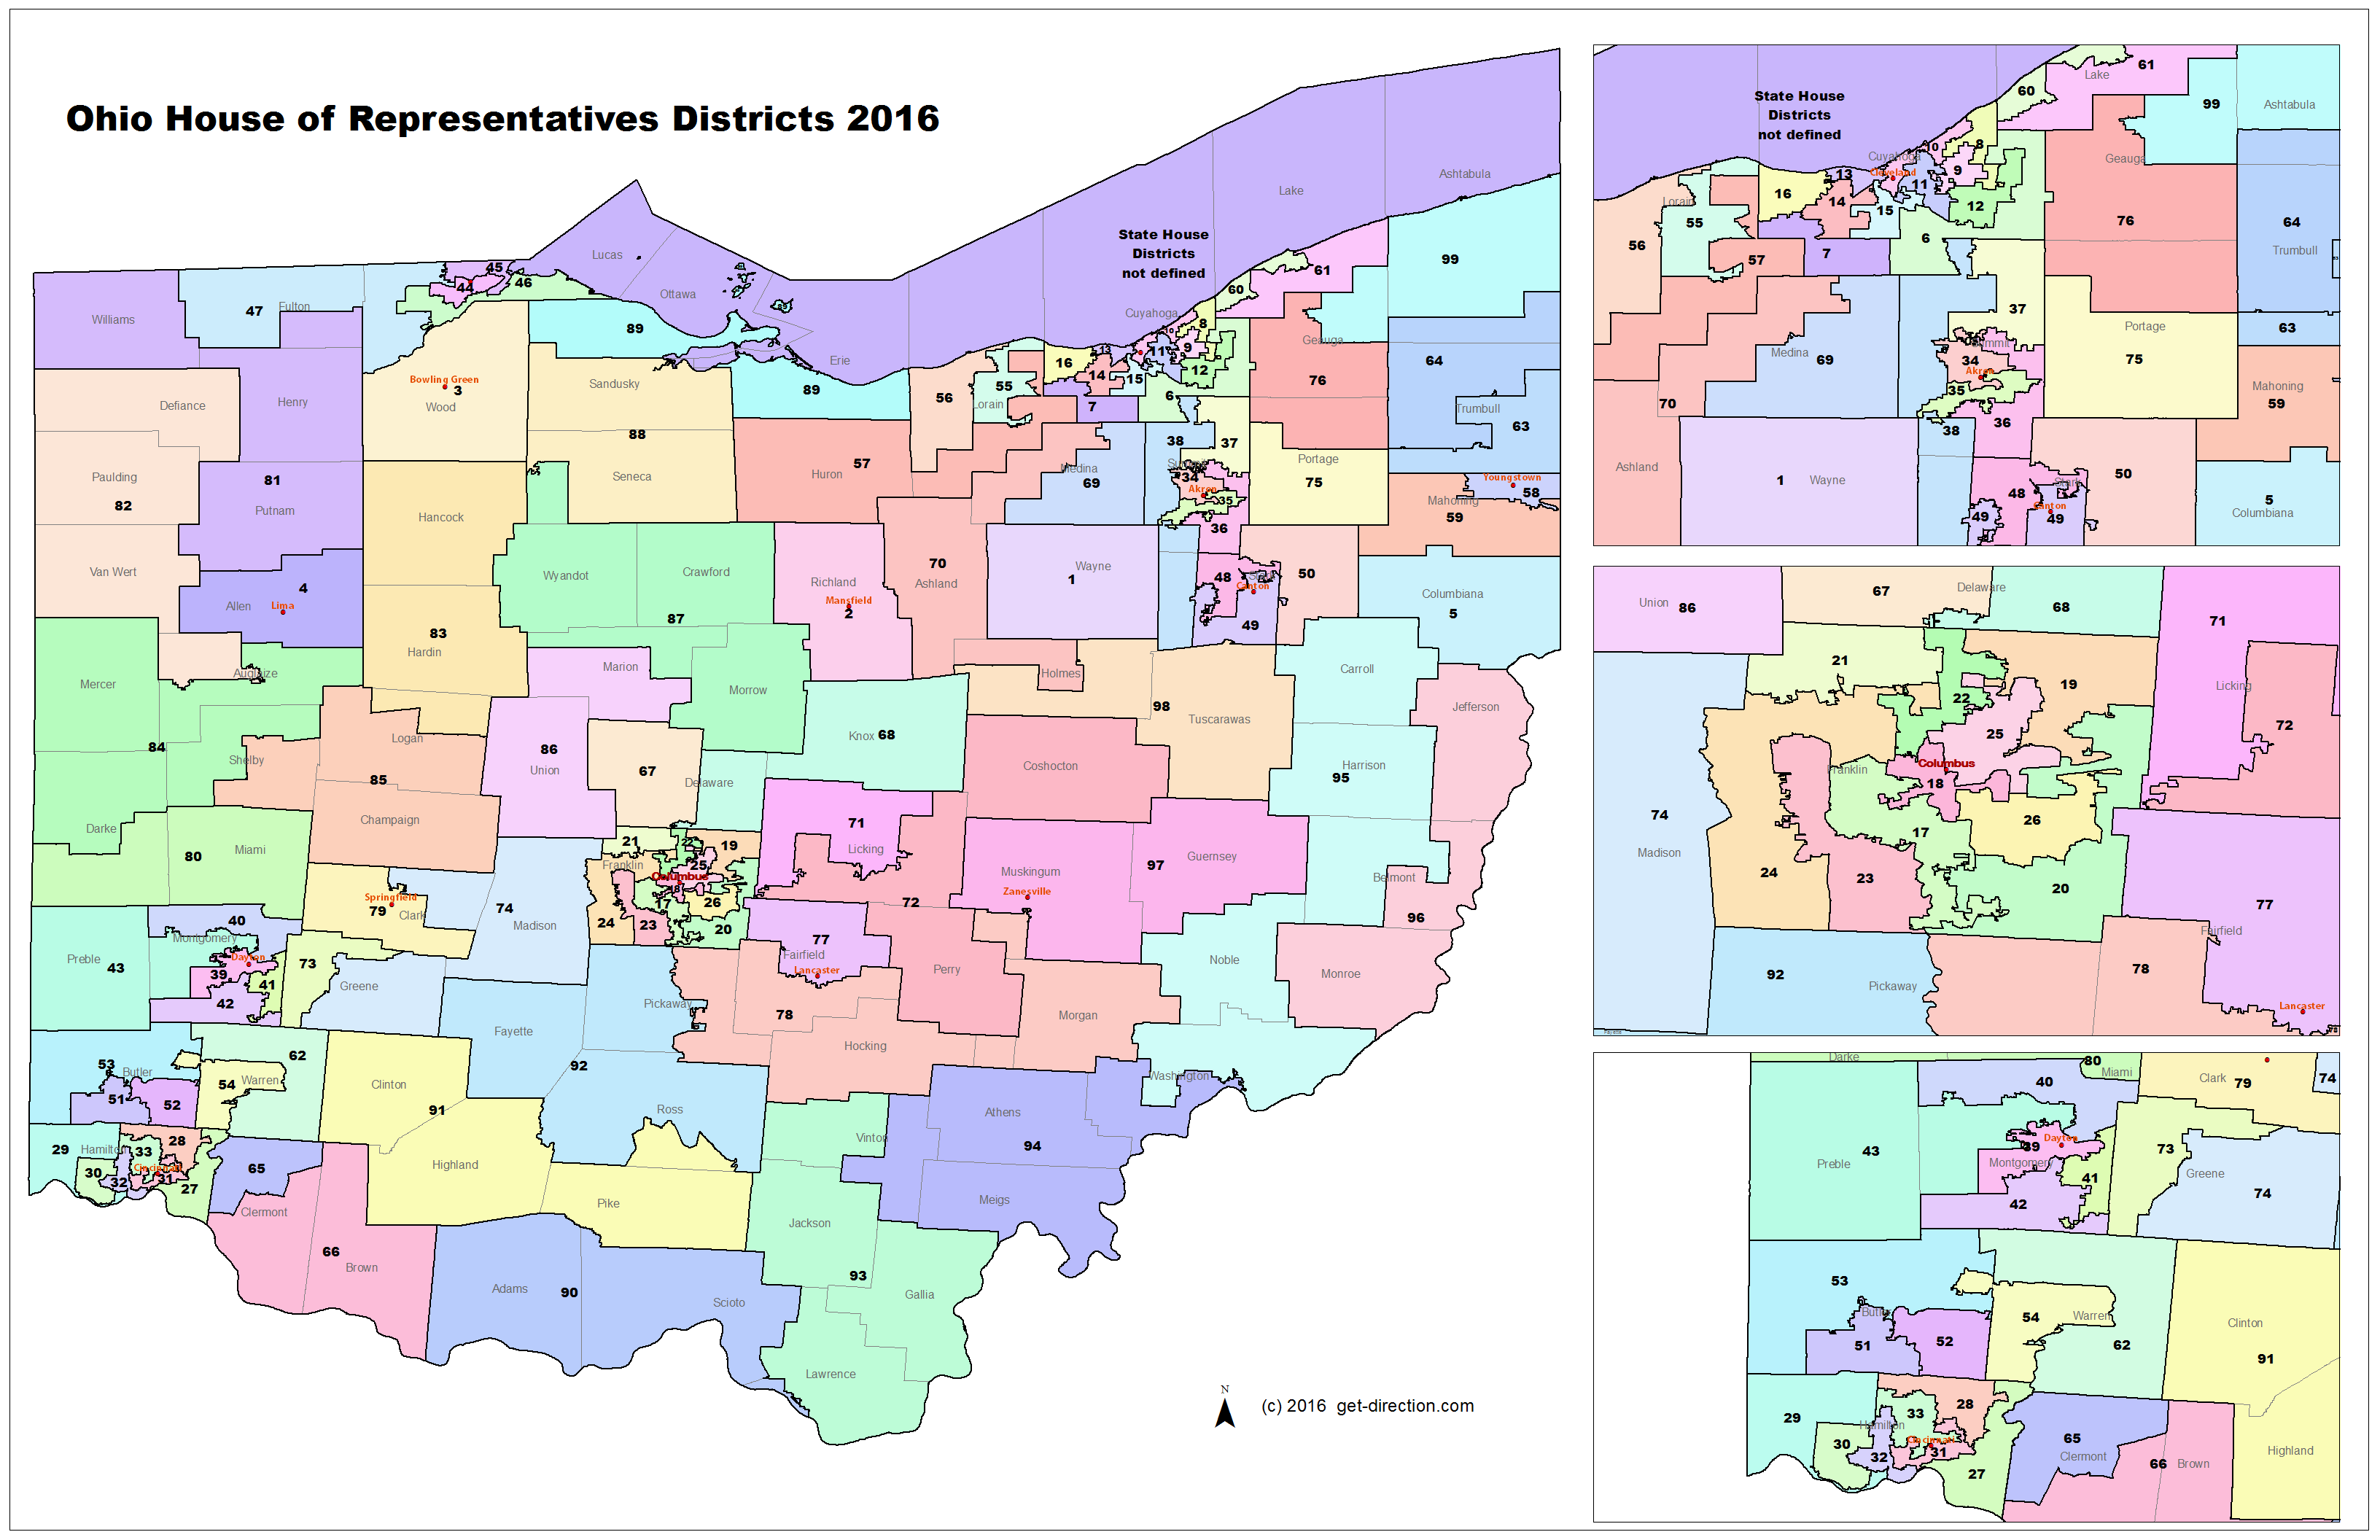 ohio-house-of-representatives-districts-2016.png